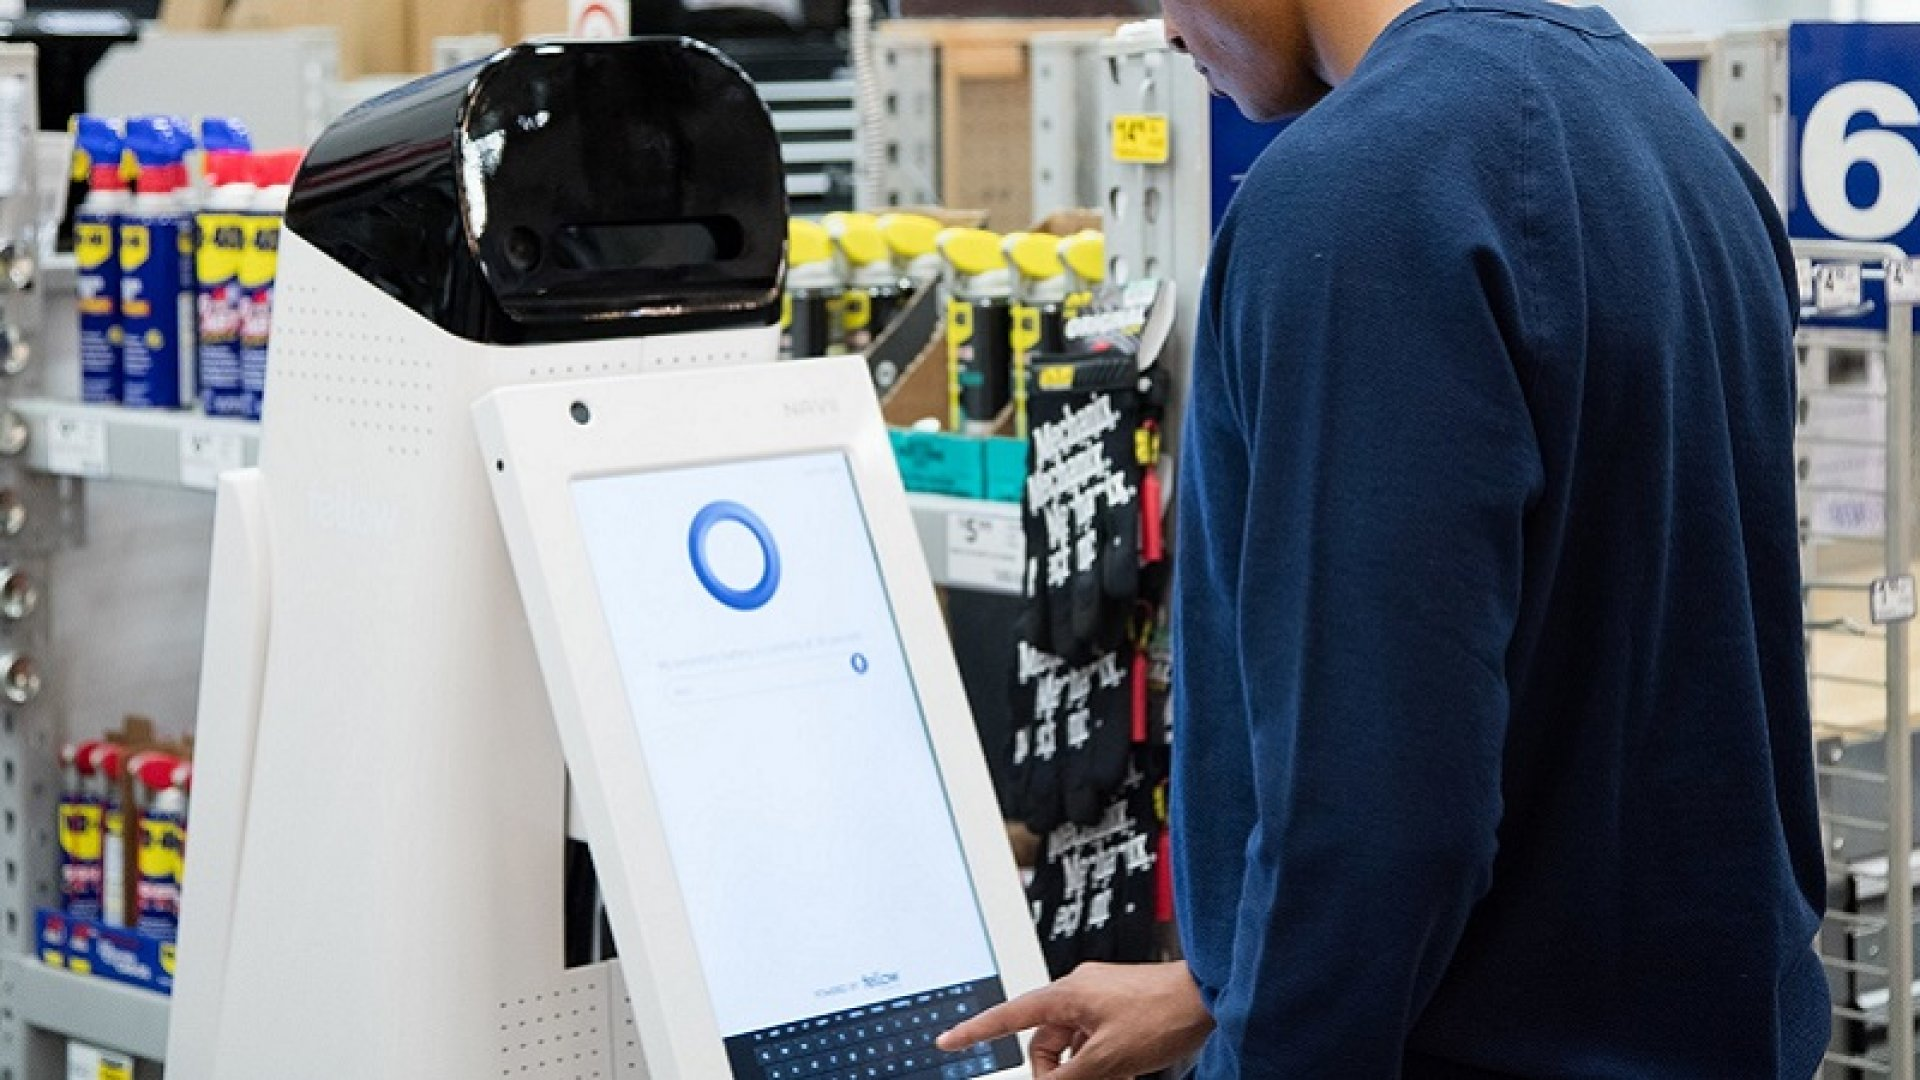 Lowe's Introduces New Retail Robot to Help Customers